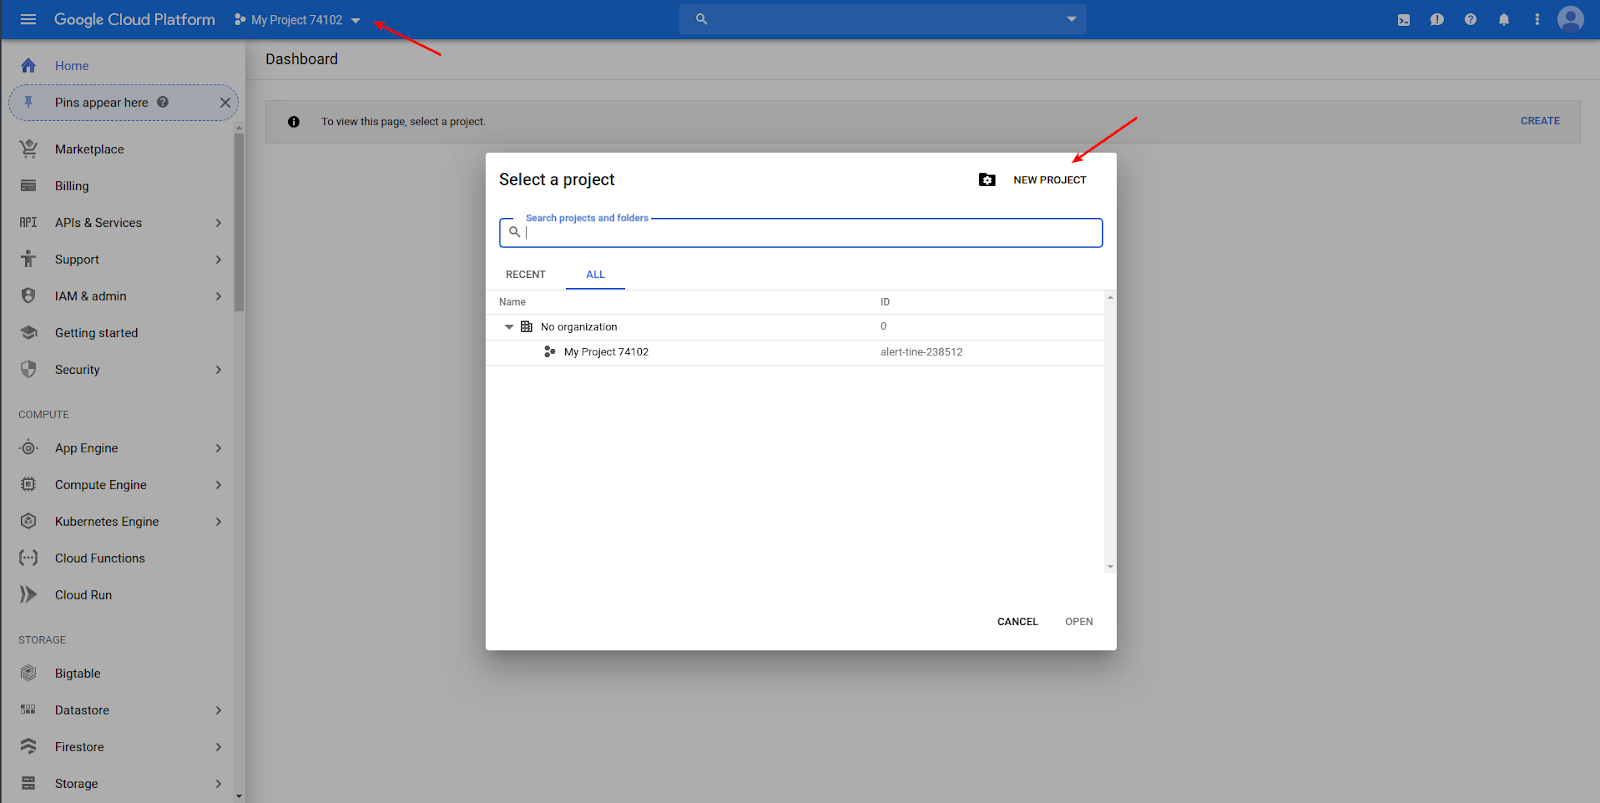 go_to_the_google_api_console_and_sign_in_with_your_google_account_select_an_existing_api_project_or_create_a_new_one